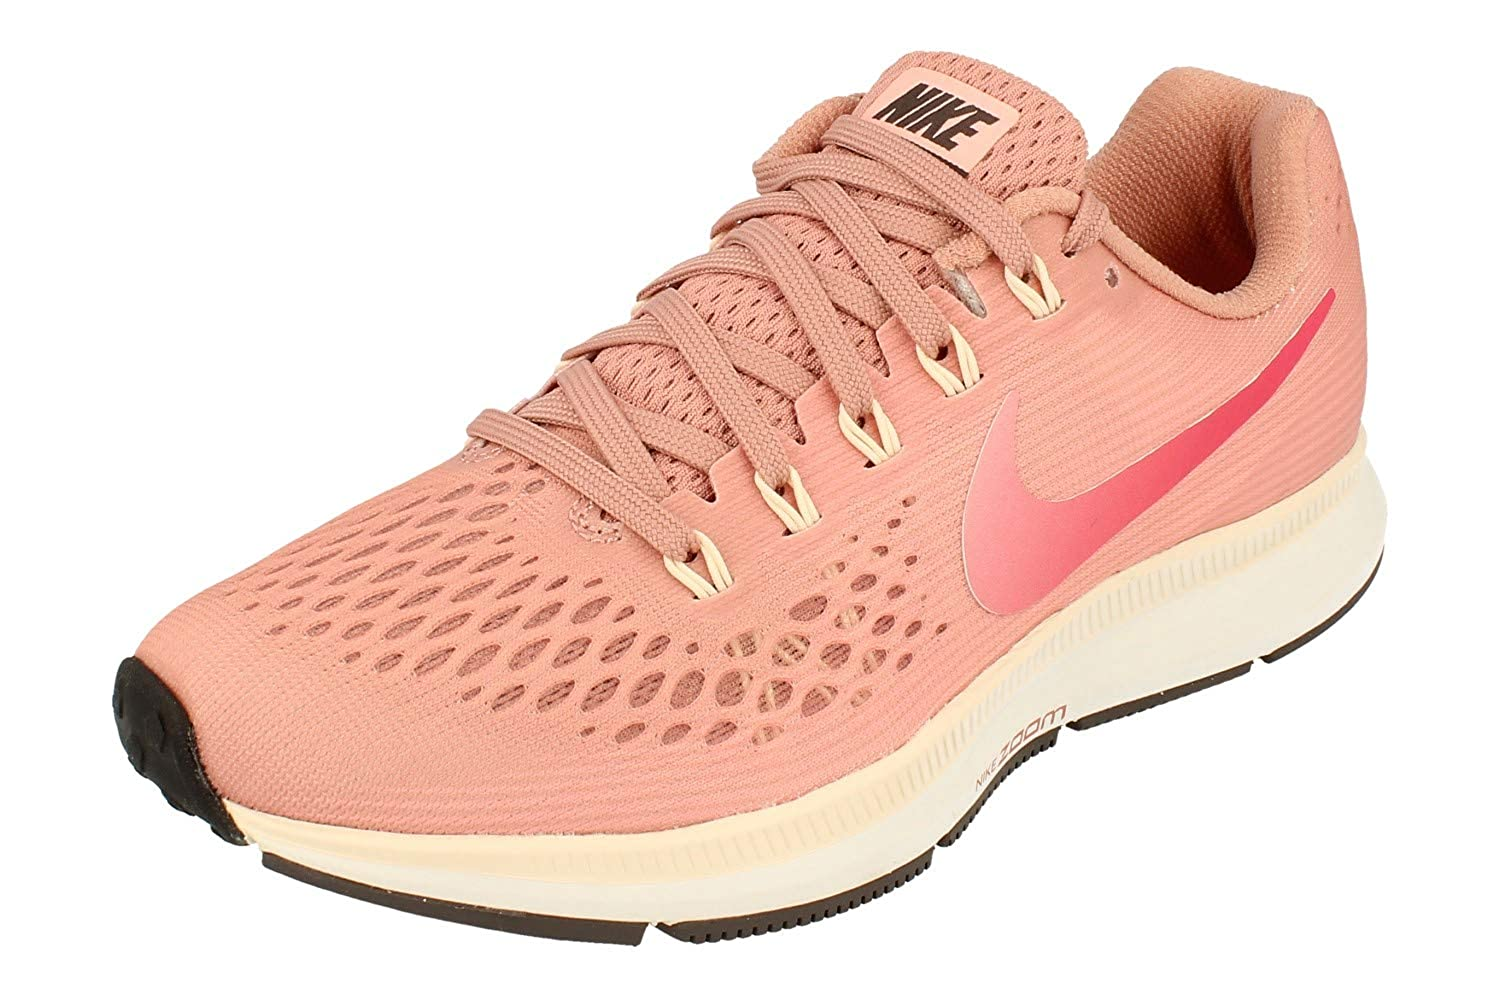 Rust rose Tropical rose 606 Nike Air Zoom Pegasus 34, Chaussures de Running Femme 38 EU